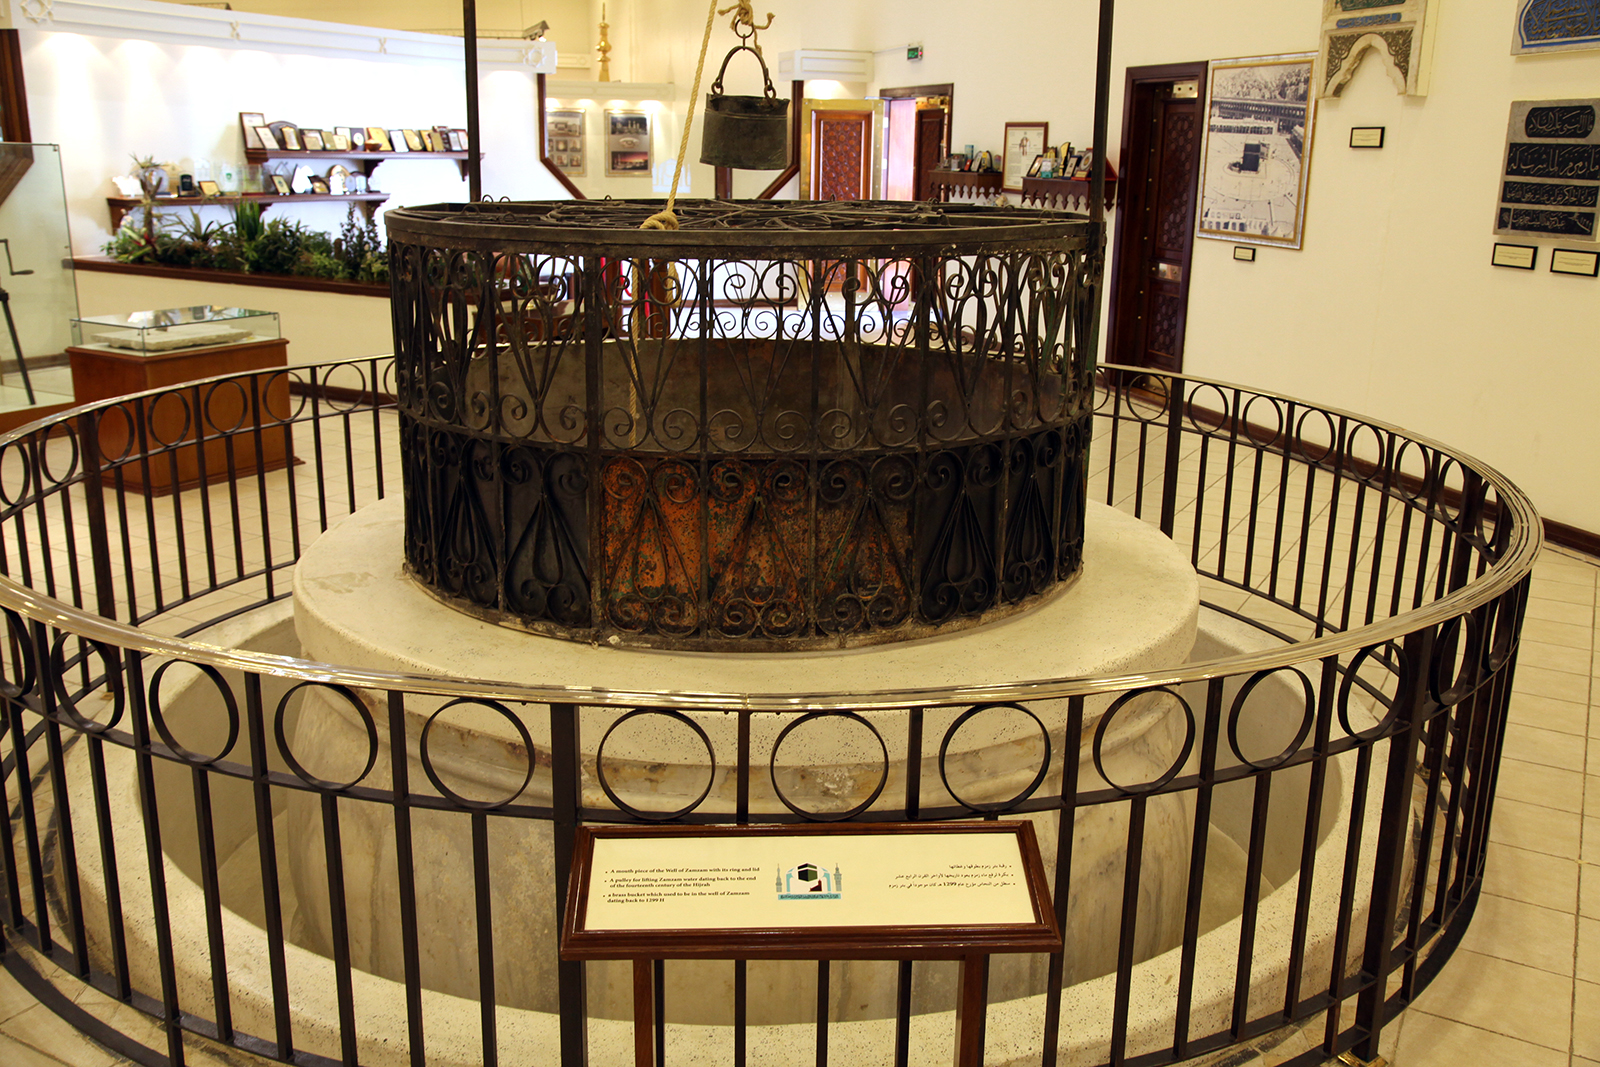 The old rails and bucket of the Zamzam well are preserved in a museum in Mecca. Photo by Mohammad Bahareth/Creative Commons